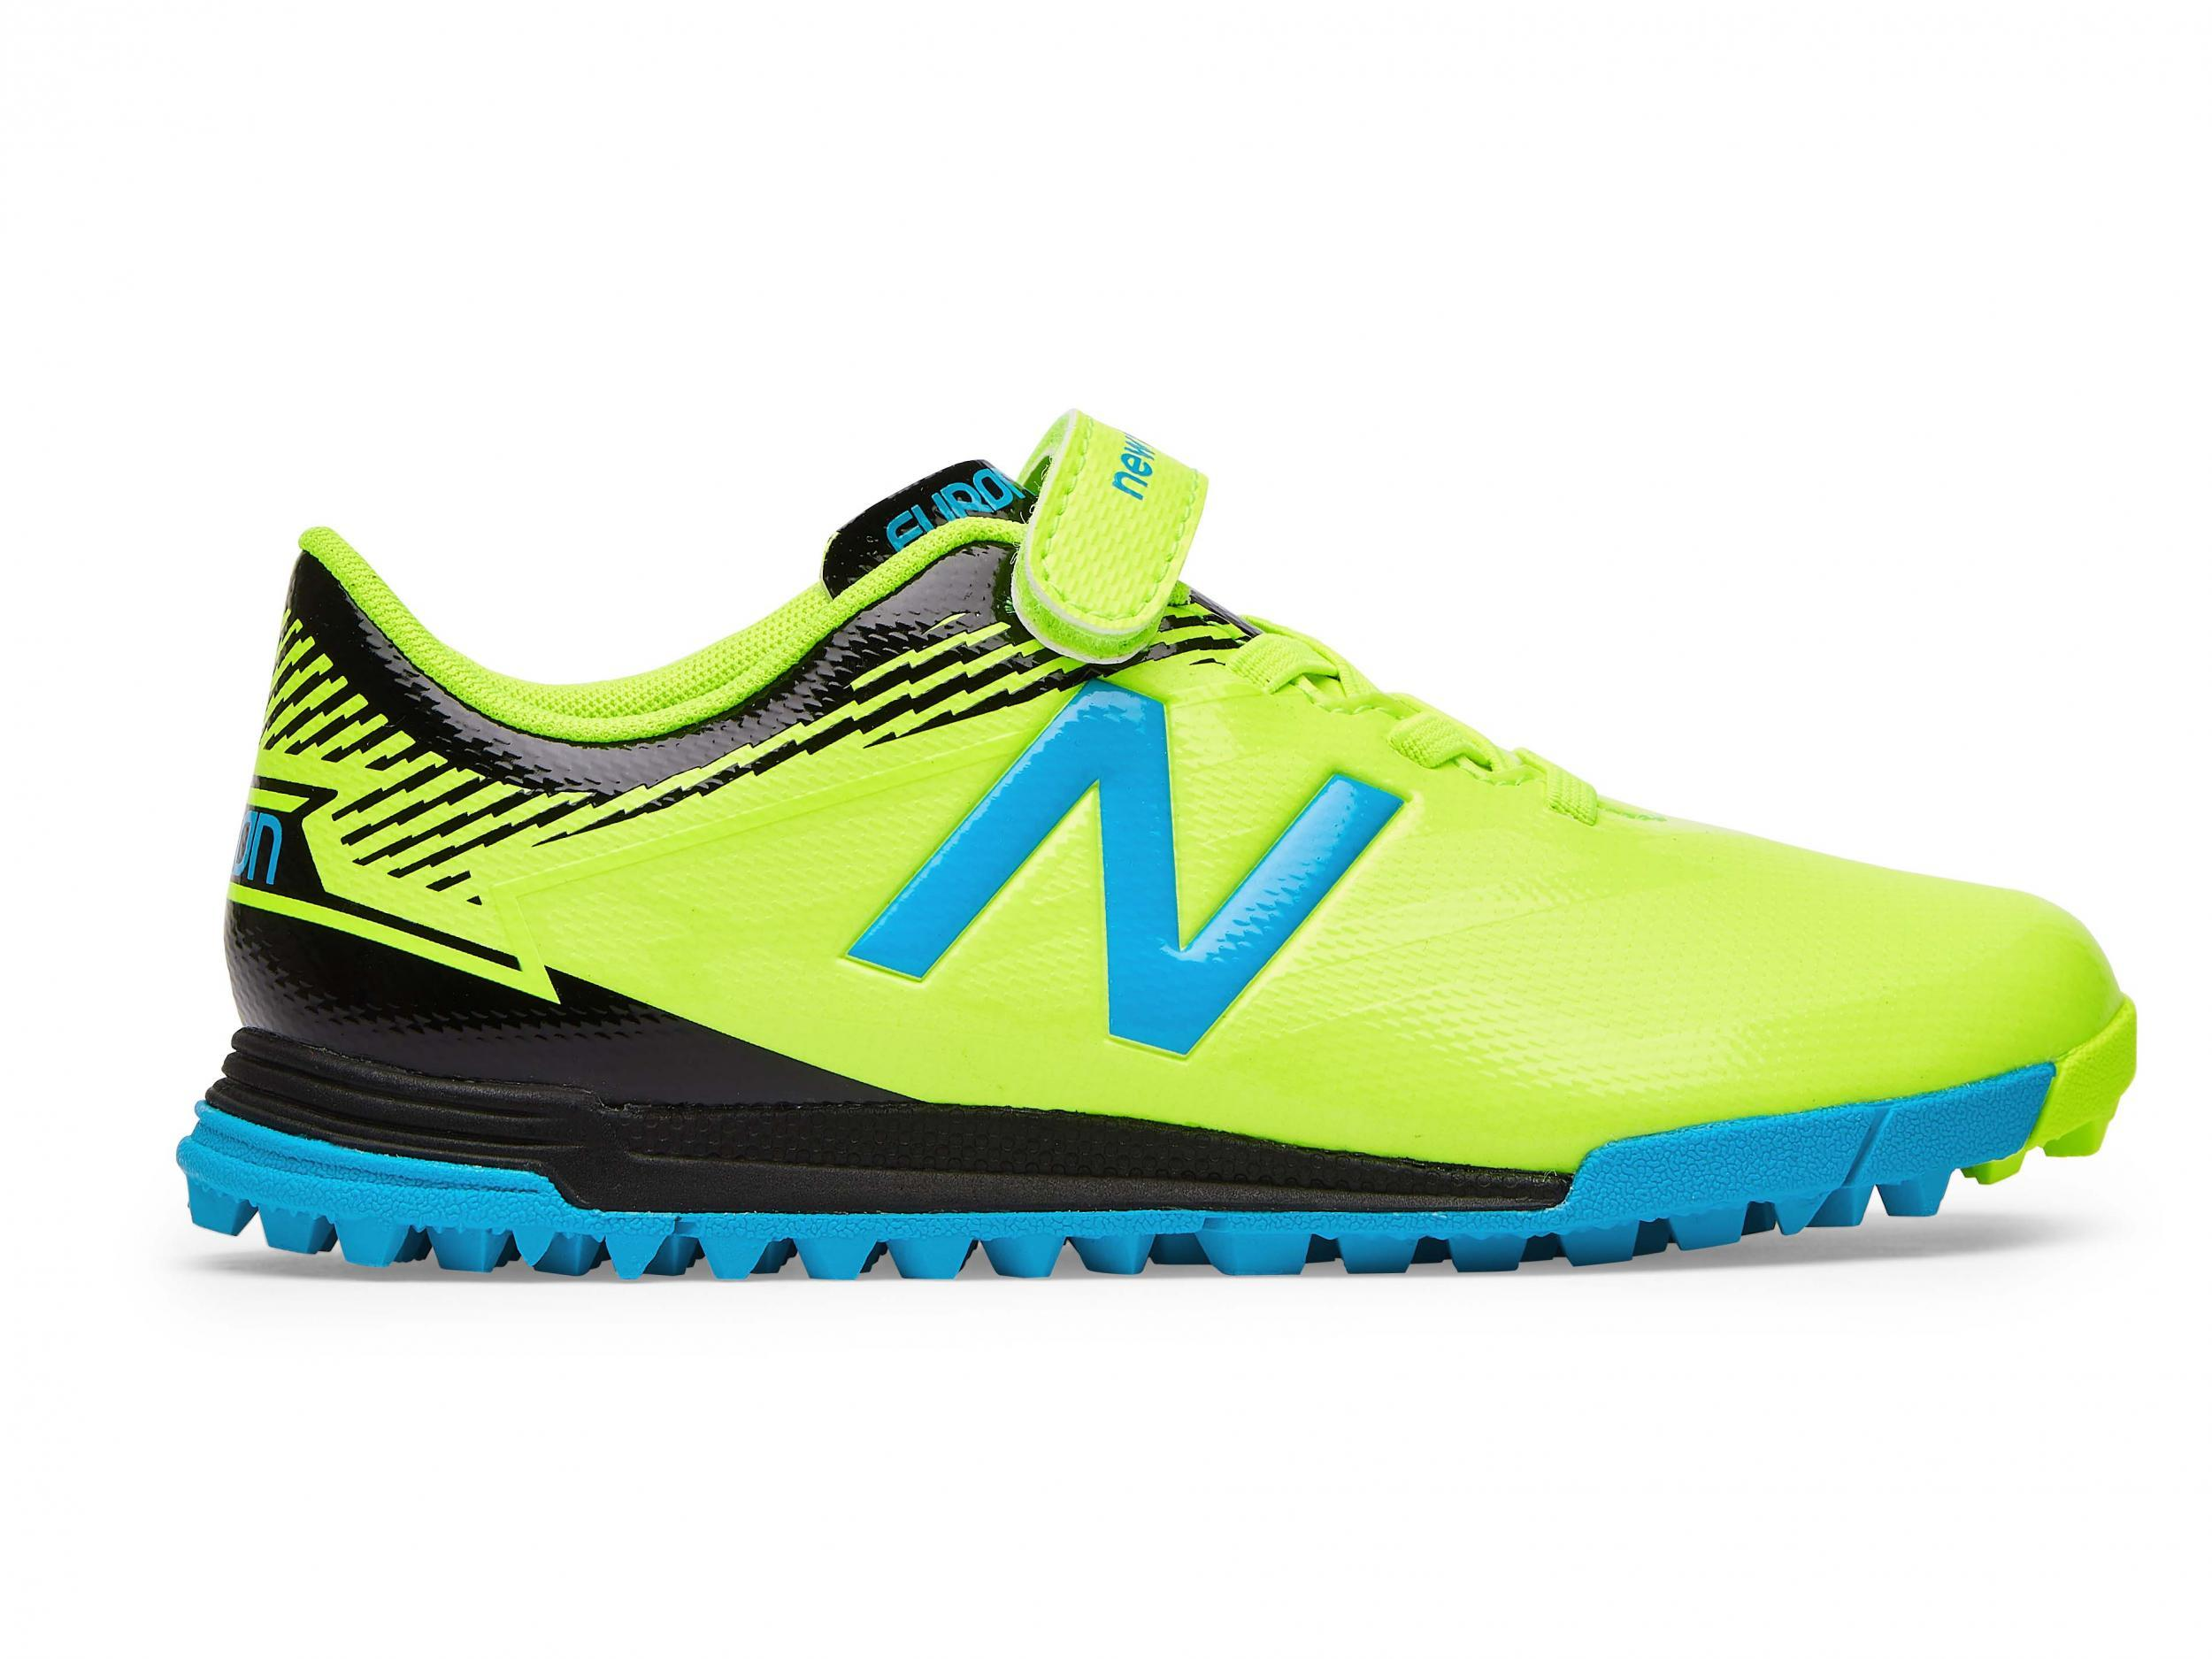 5a18bcc18c5d New Balance Junior Furon 3.0 Hook and Loop TF: £45, New Balance